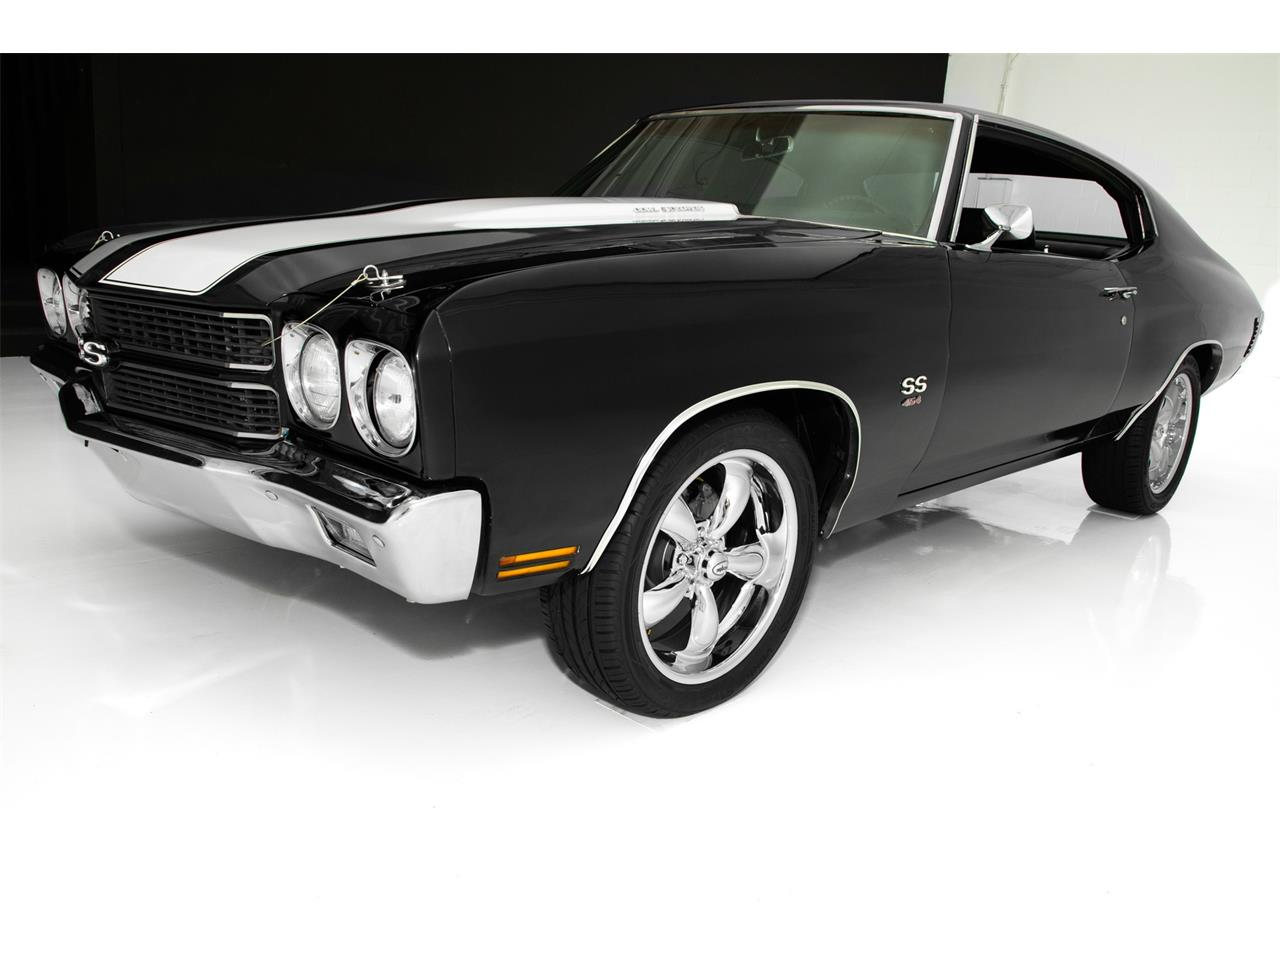 Large Picture of '70 Chevrolet Chevelle - $49,900.00 - OZEG